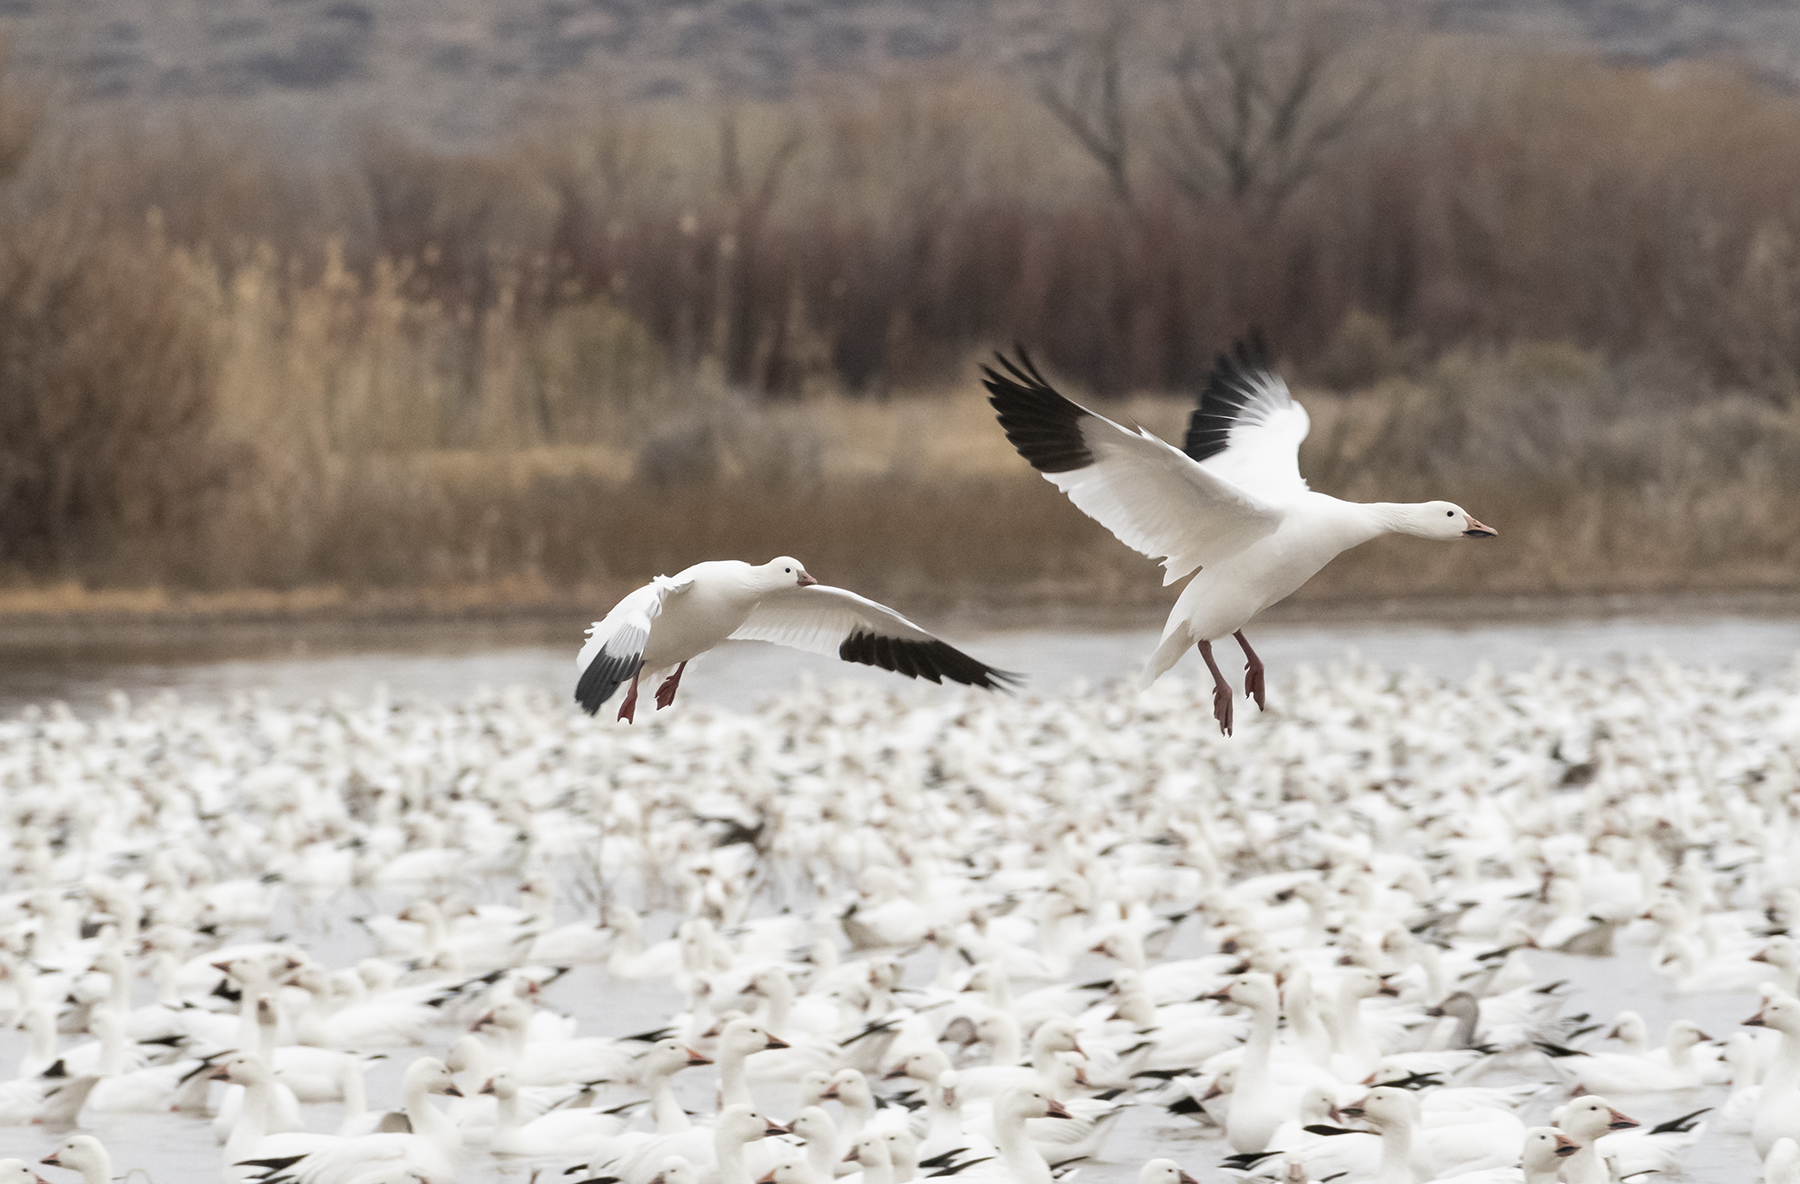 Marlene_Miyamoto_Great North American Migrations_Snow Geese 3_3.jpg